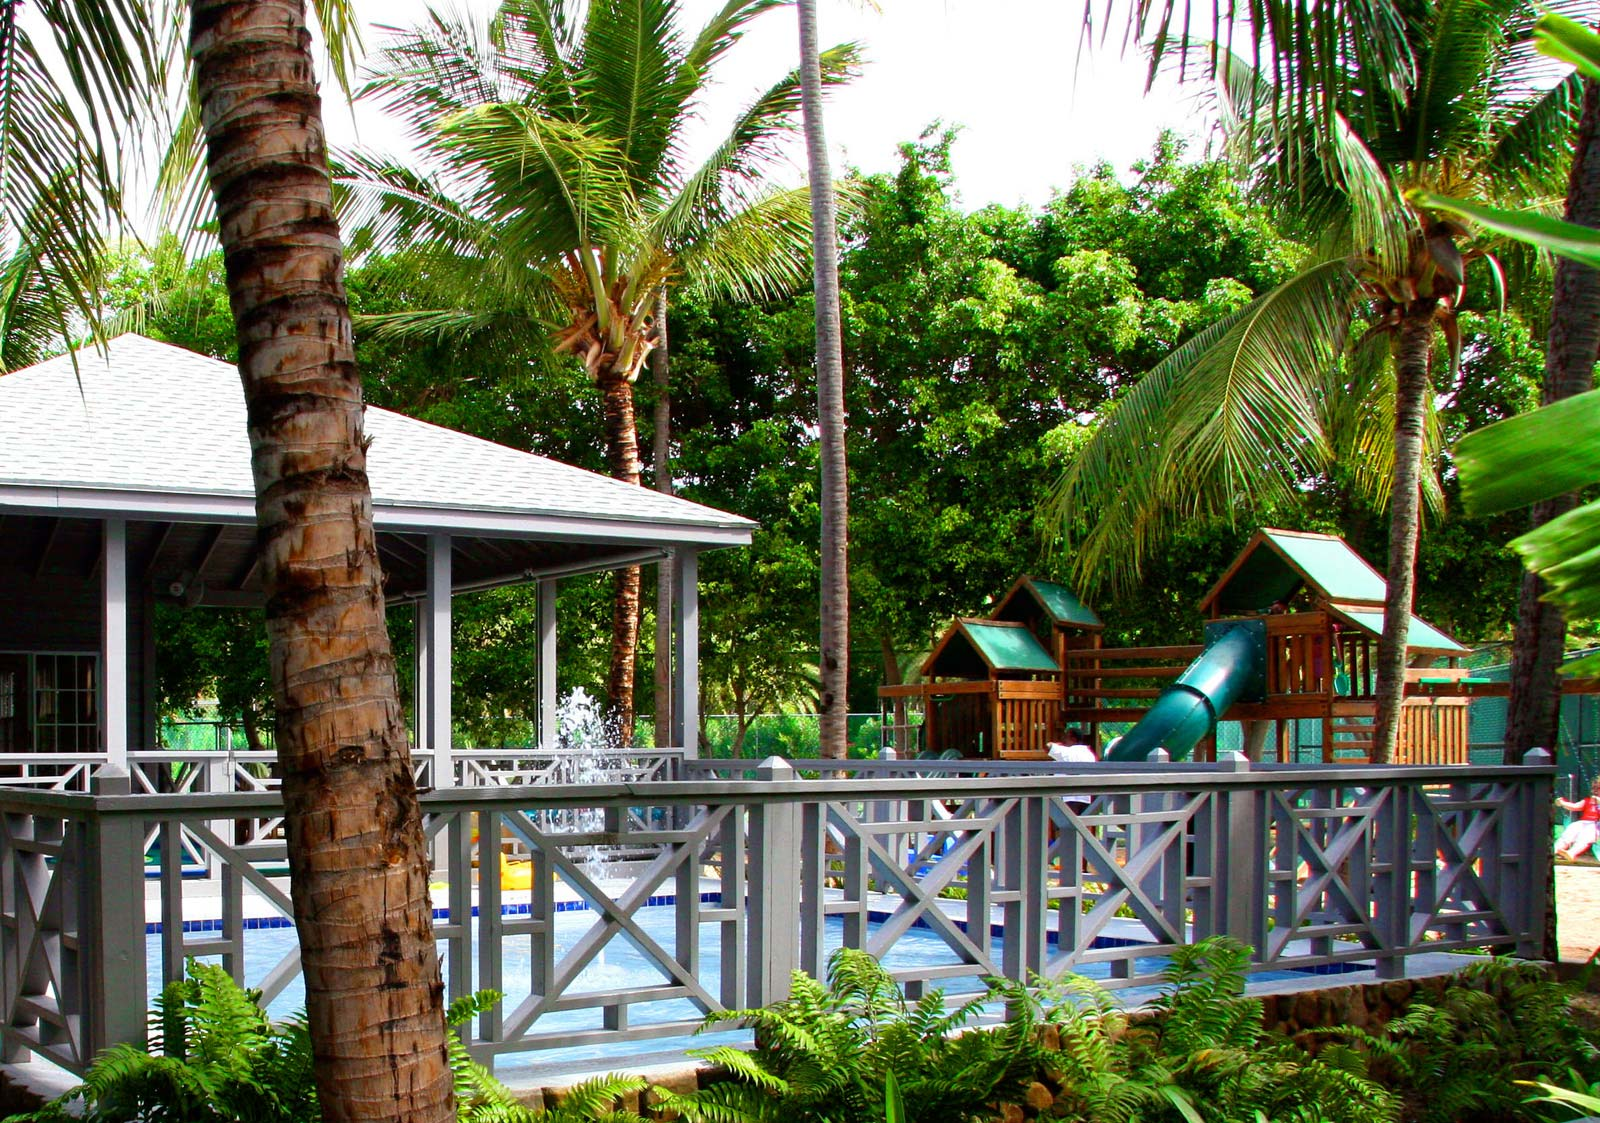 http://www.deshotelsetdesiles.com/hotel-vol-guadeloupe/photos/H29HPH2Y.jpg